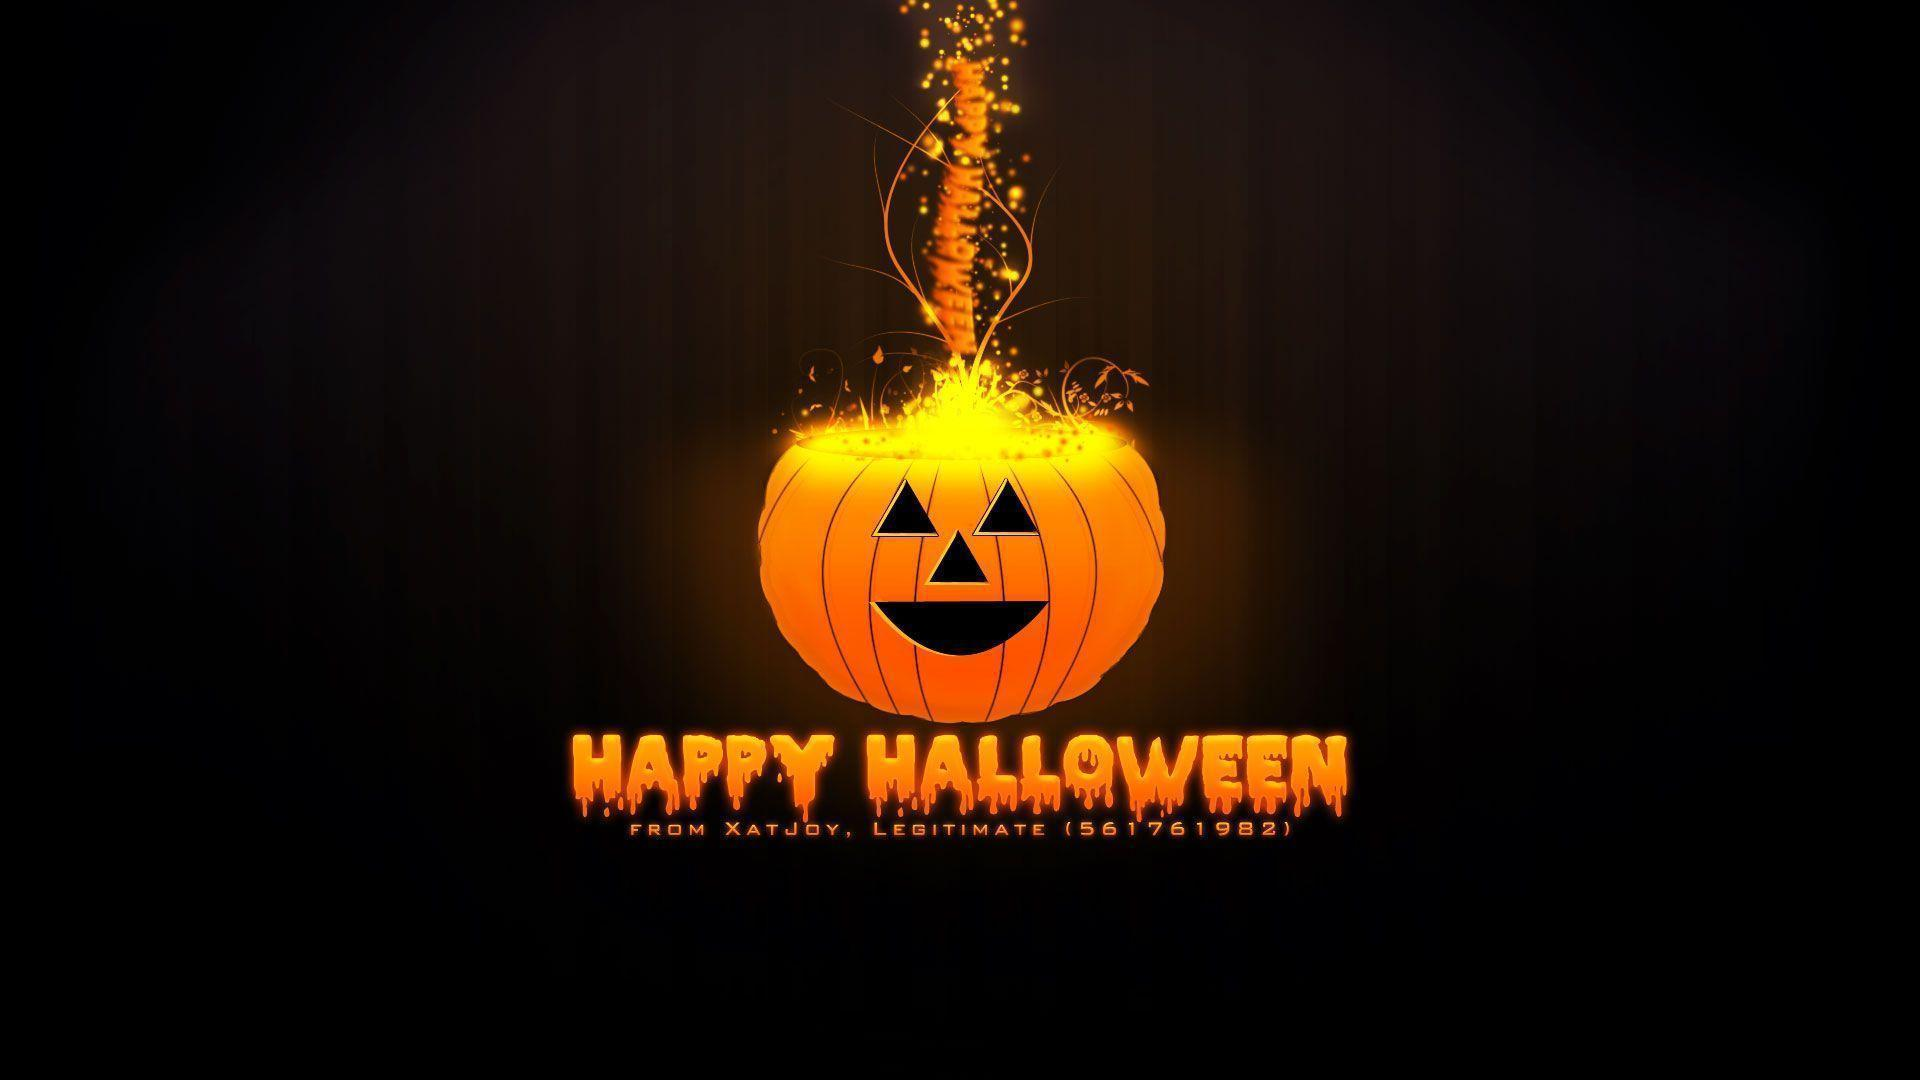 happy halloween background - photo #10